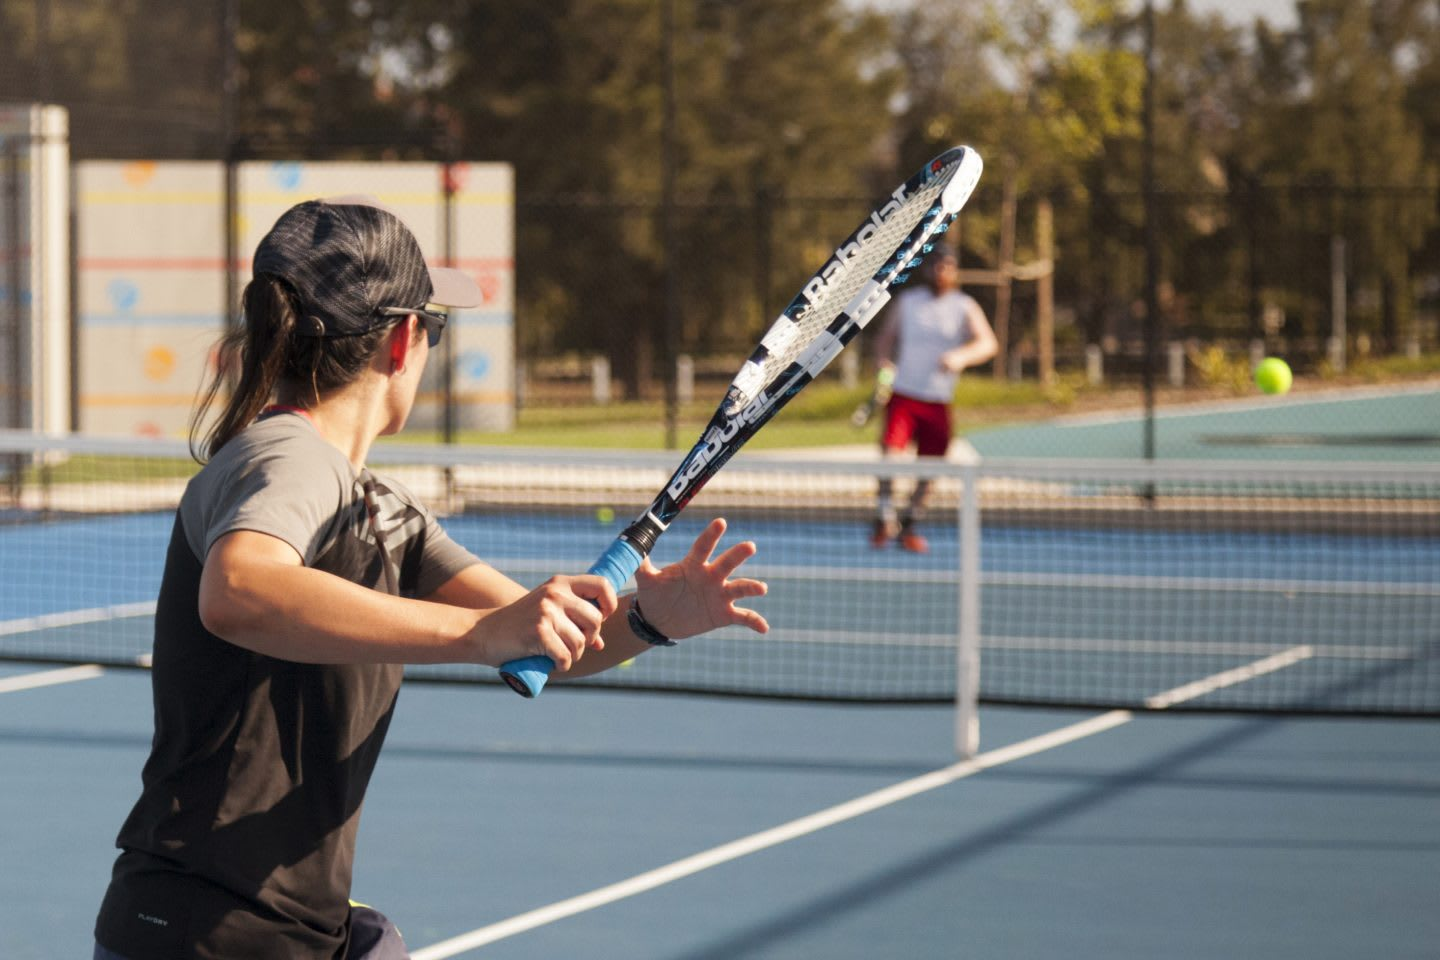 Two people playing tennis on a sunny day.Tennis, sports, fitness, motivation, team.